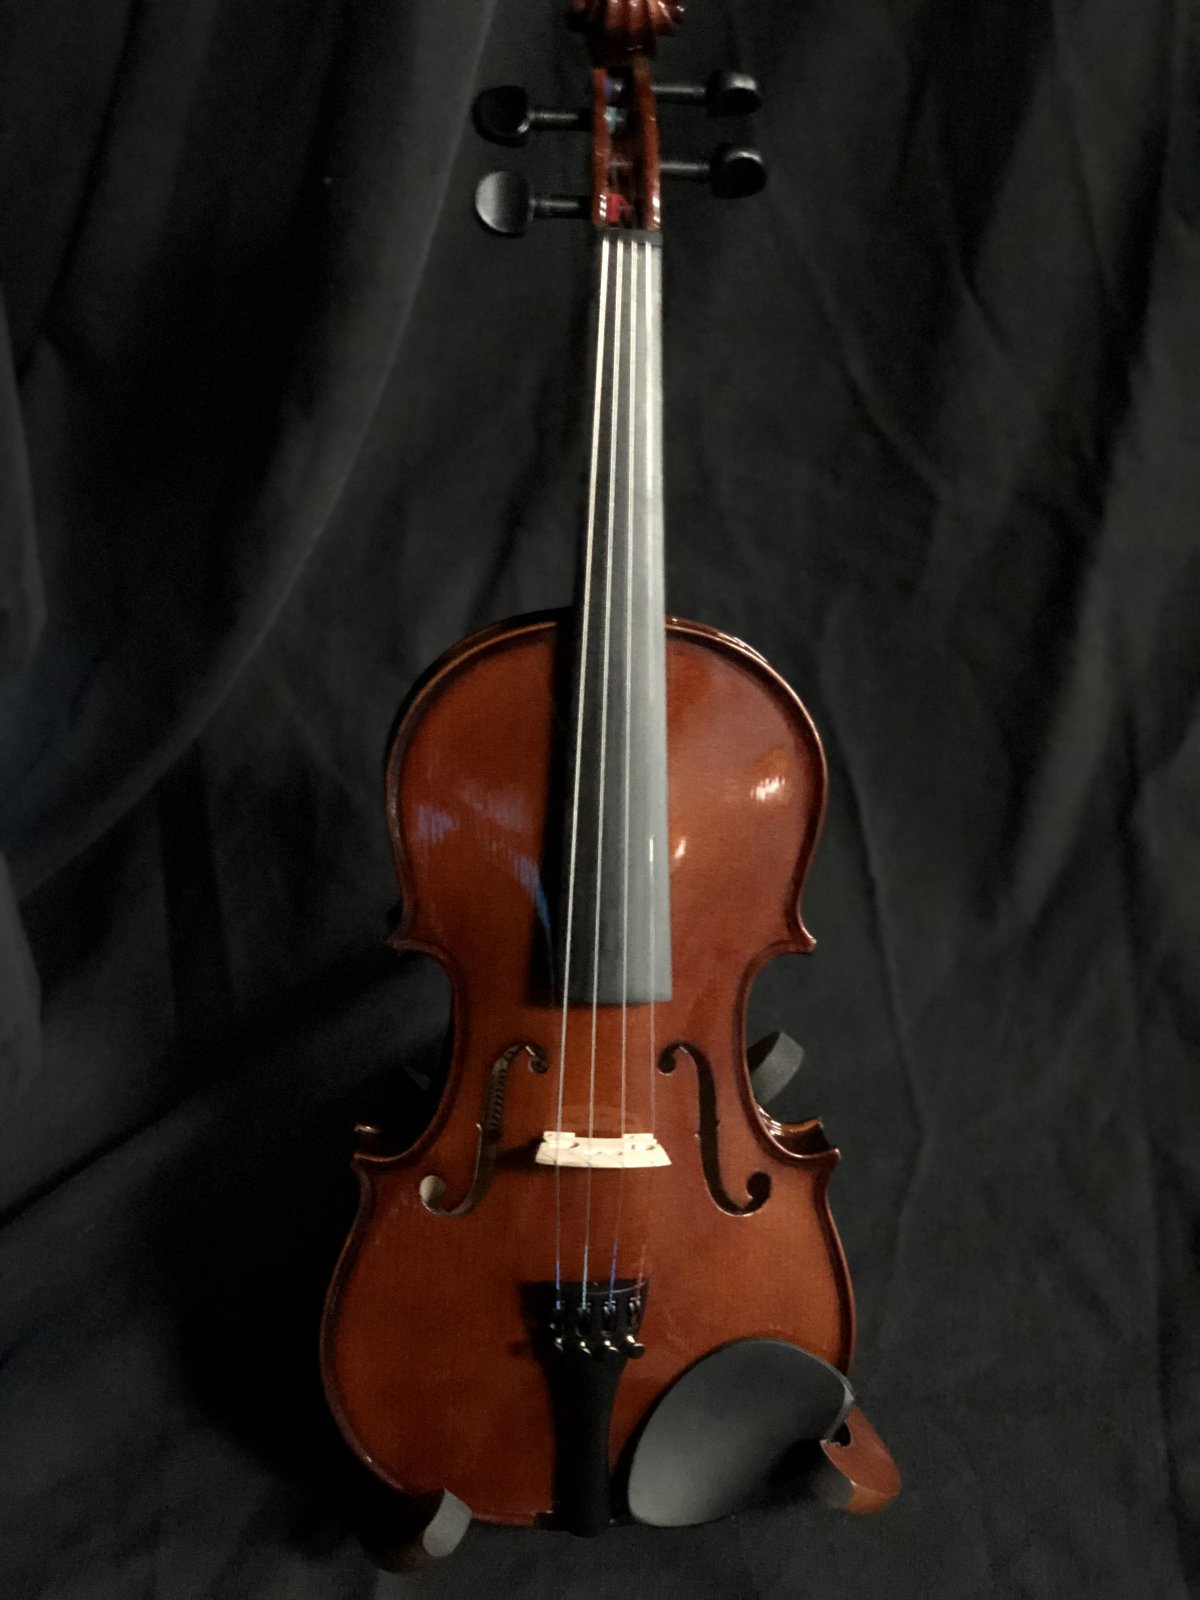 Preowned Palatino 3/4 size Violin Outfit